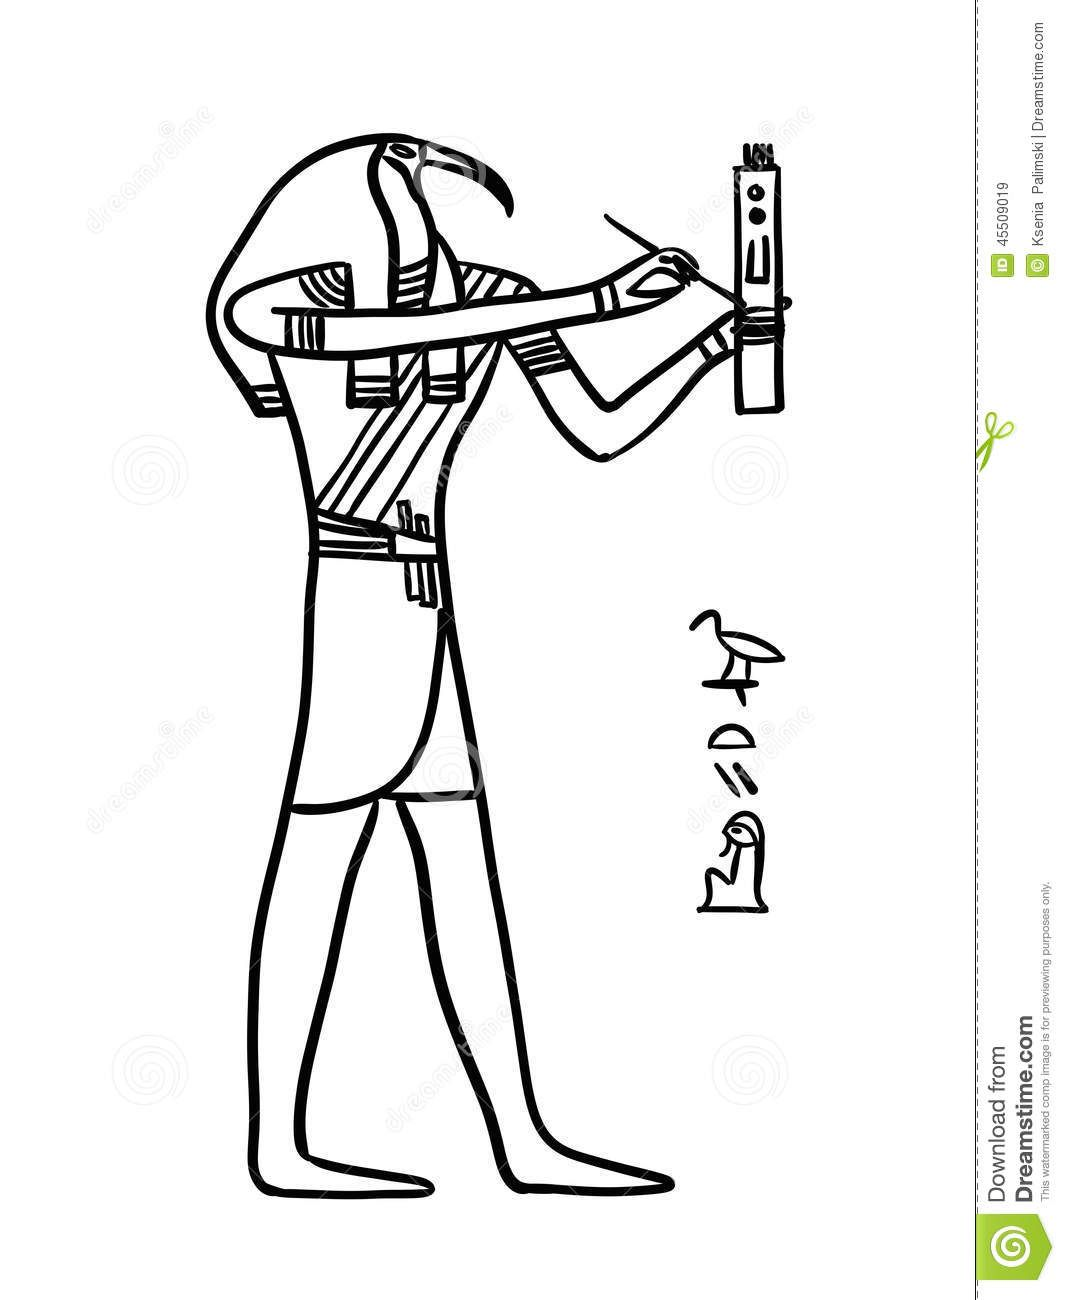 Thoth egyptian god illustration isolated black line white man head thoth egyptian god illustration isolated black line on white a man with the head of an ibis or a baboon biocorpaavc Gallery